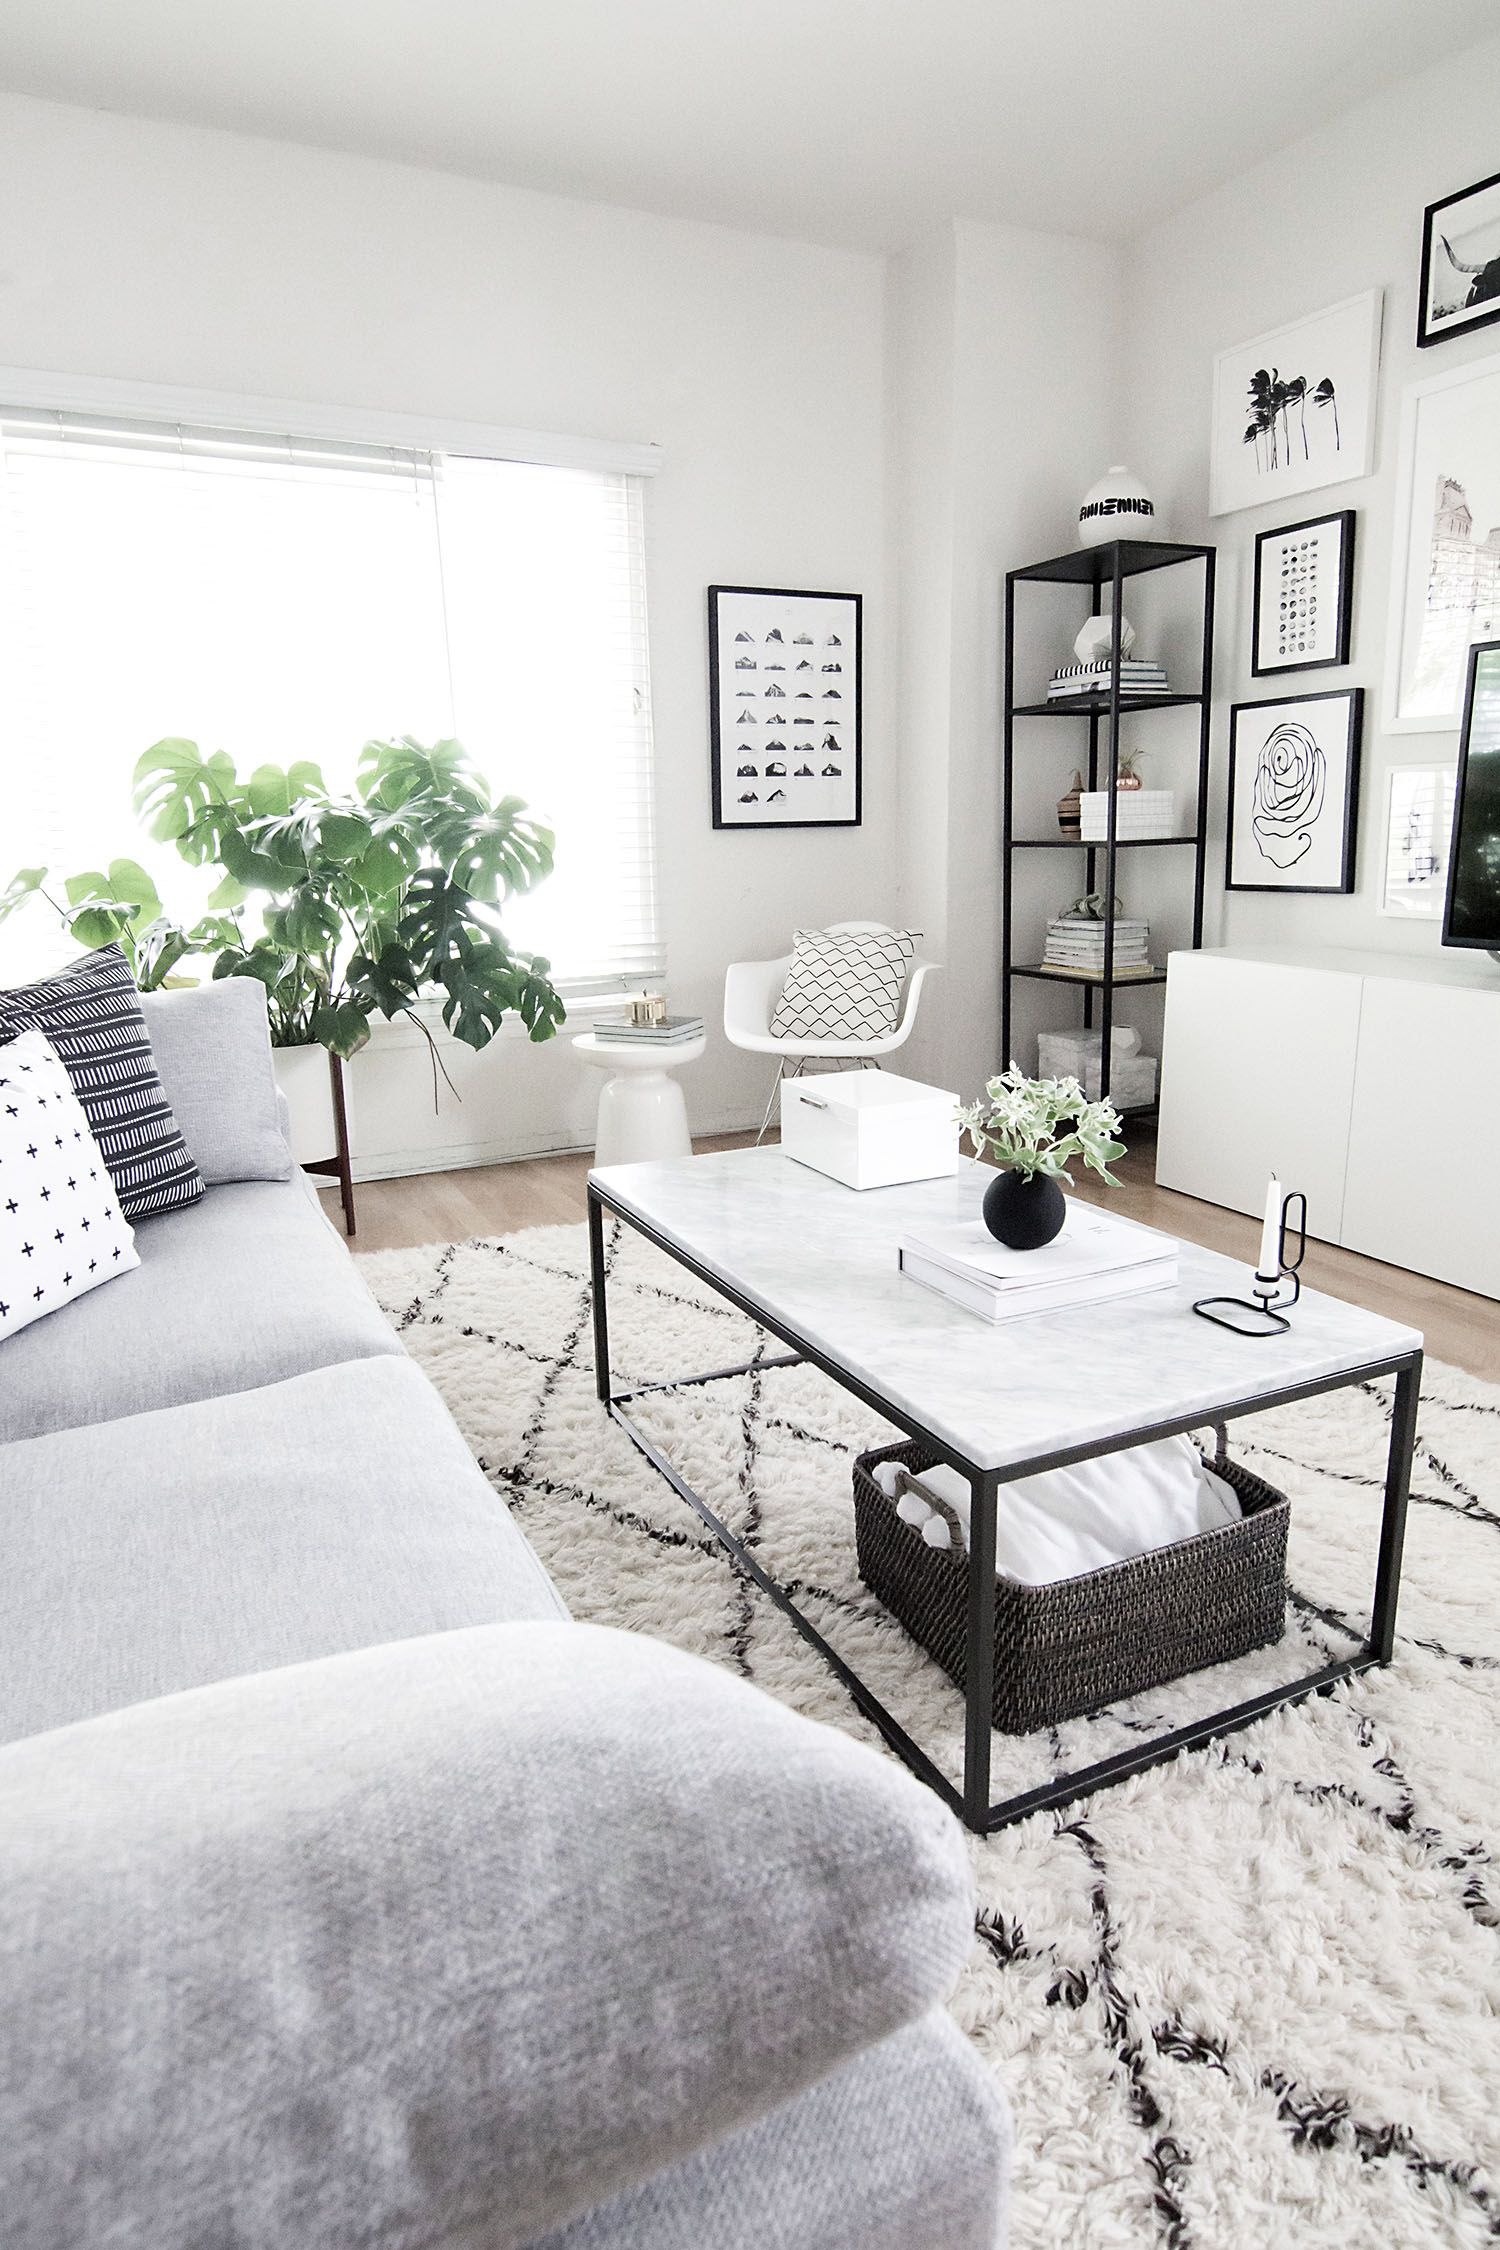 Coffee Table Styling West elm rug Grey couches and Monochrome